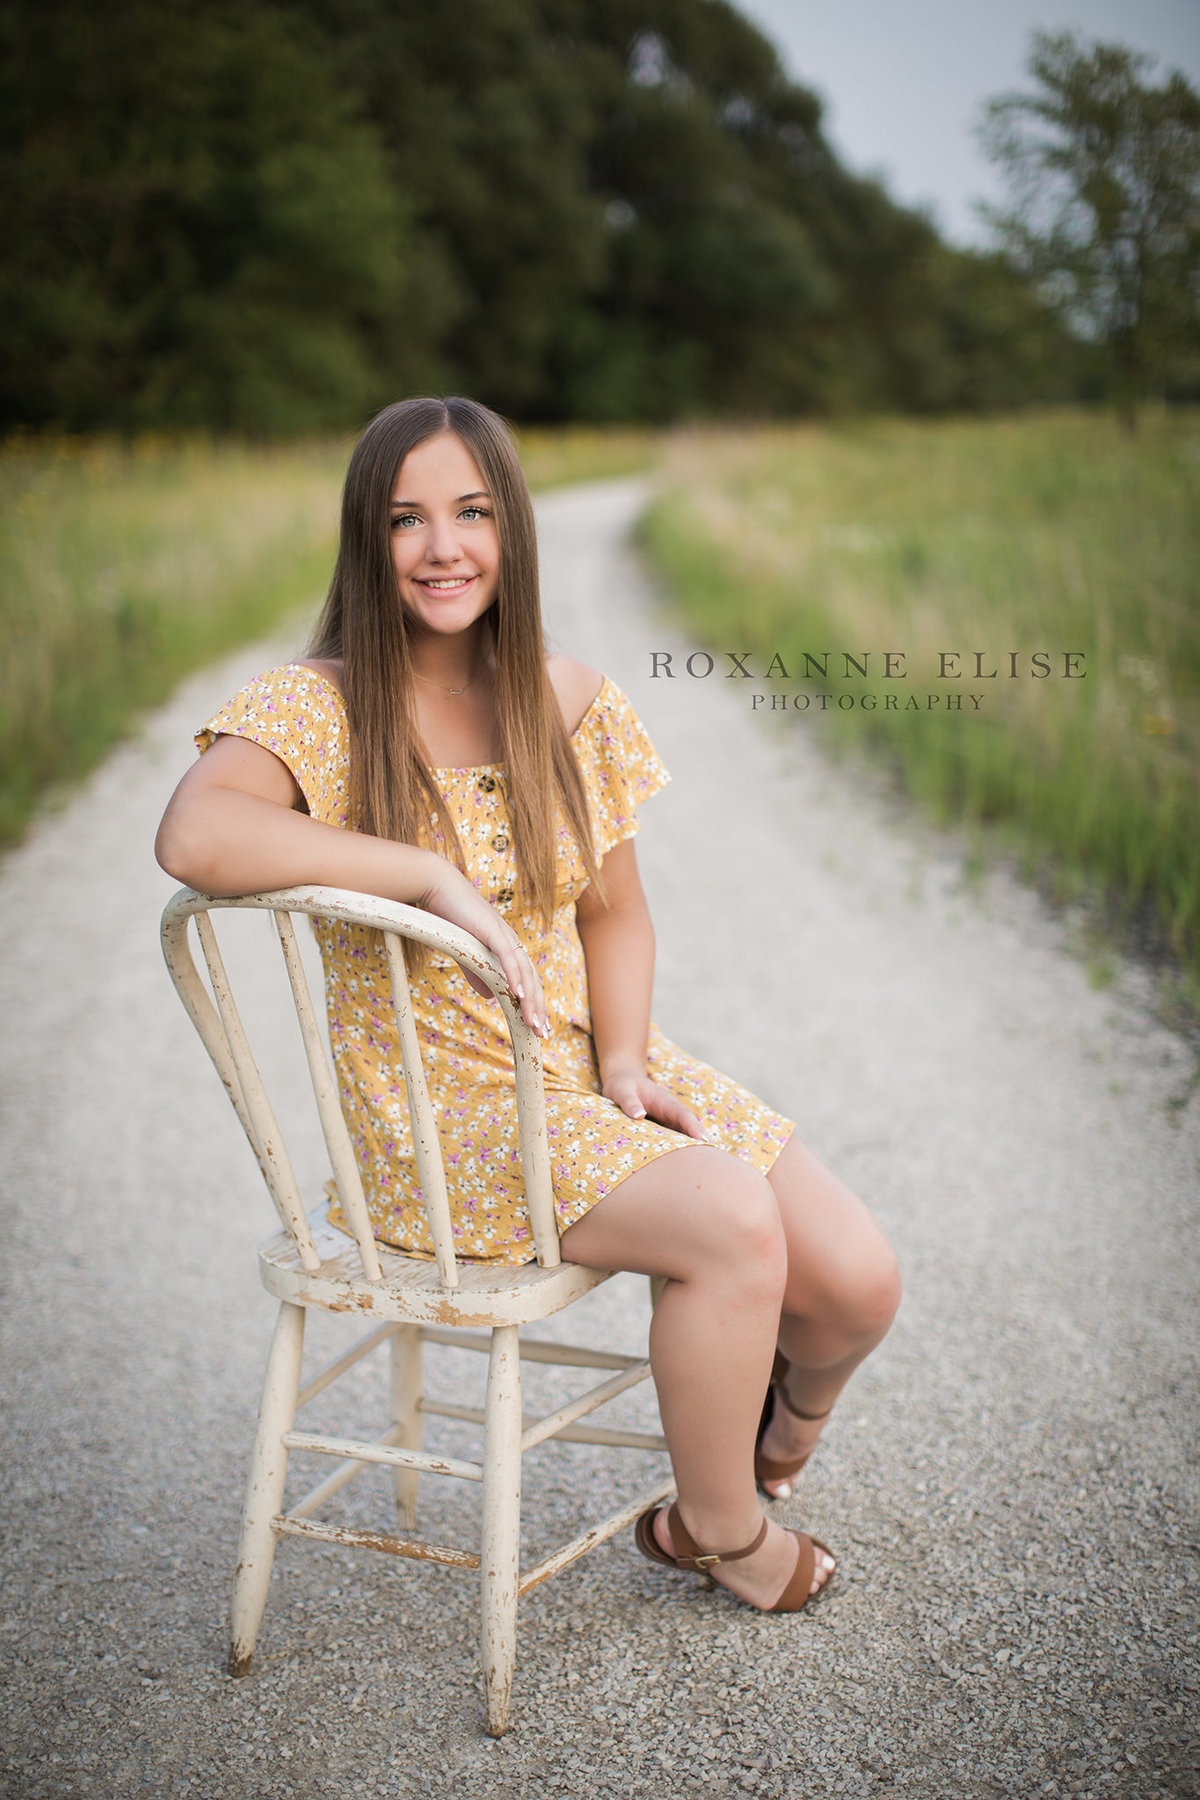 quality-senior-photos-fox-valley